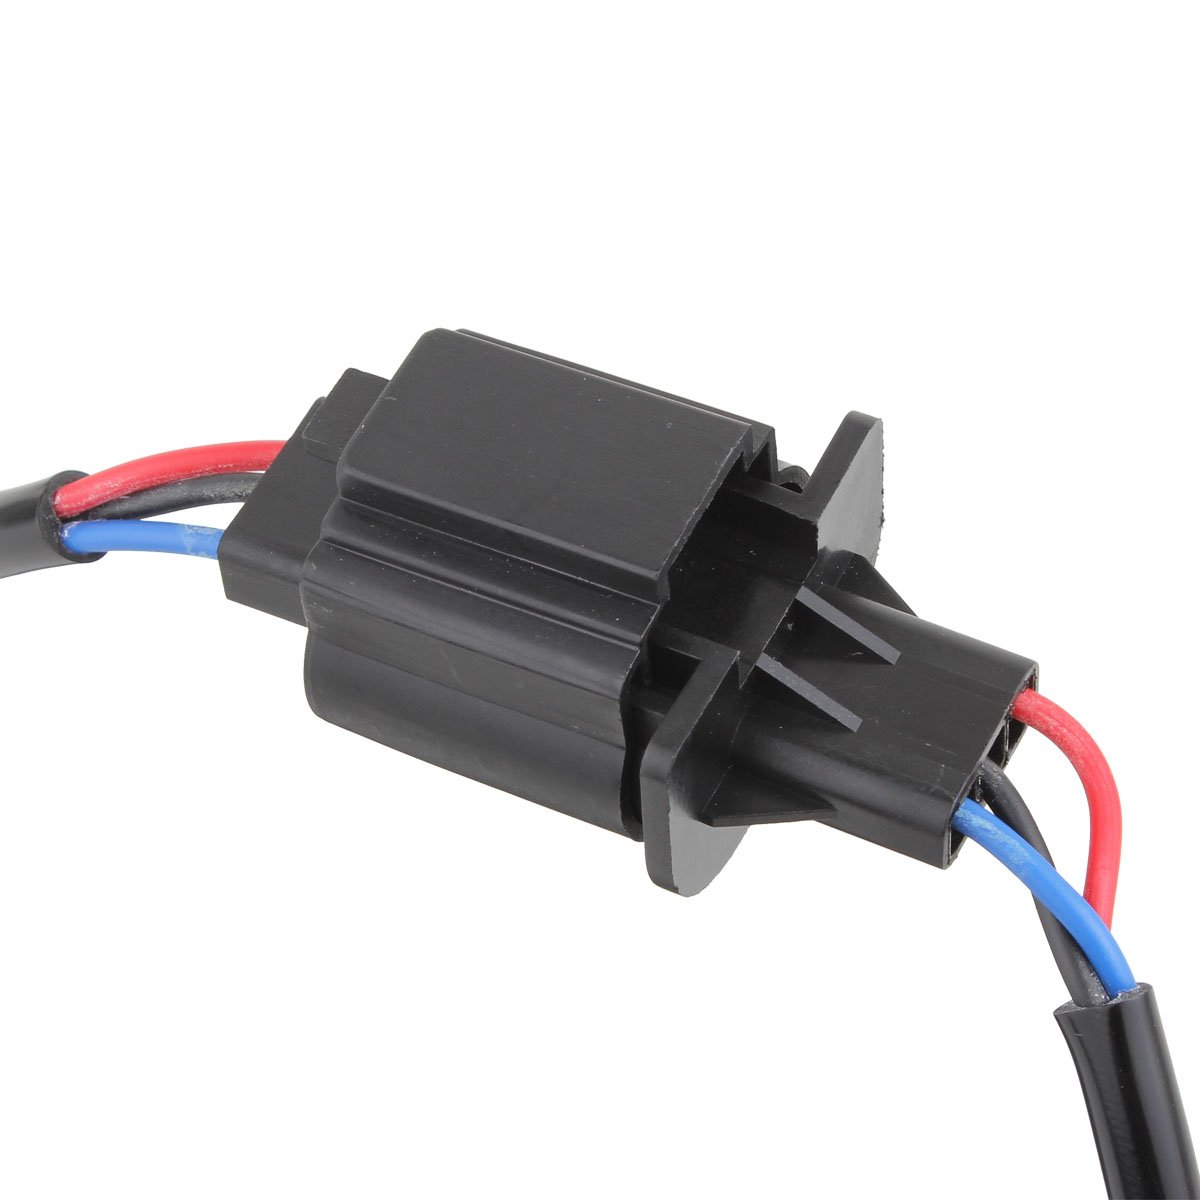 TOMALL H1 LED Headlight Replacement Male Plug Single Diode Converter Wiring Connecting Lines Cables